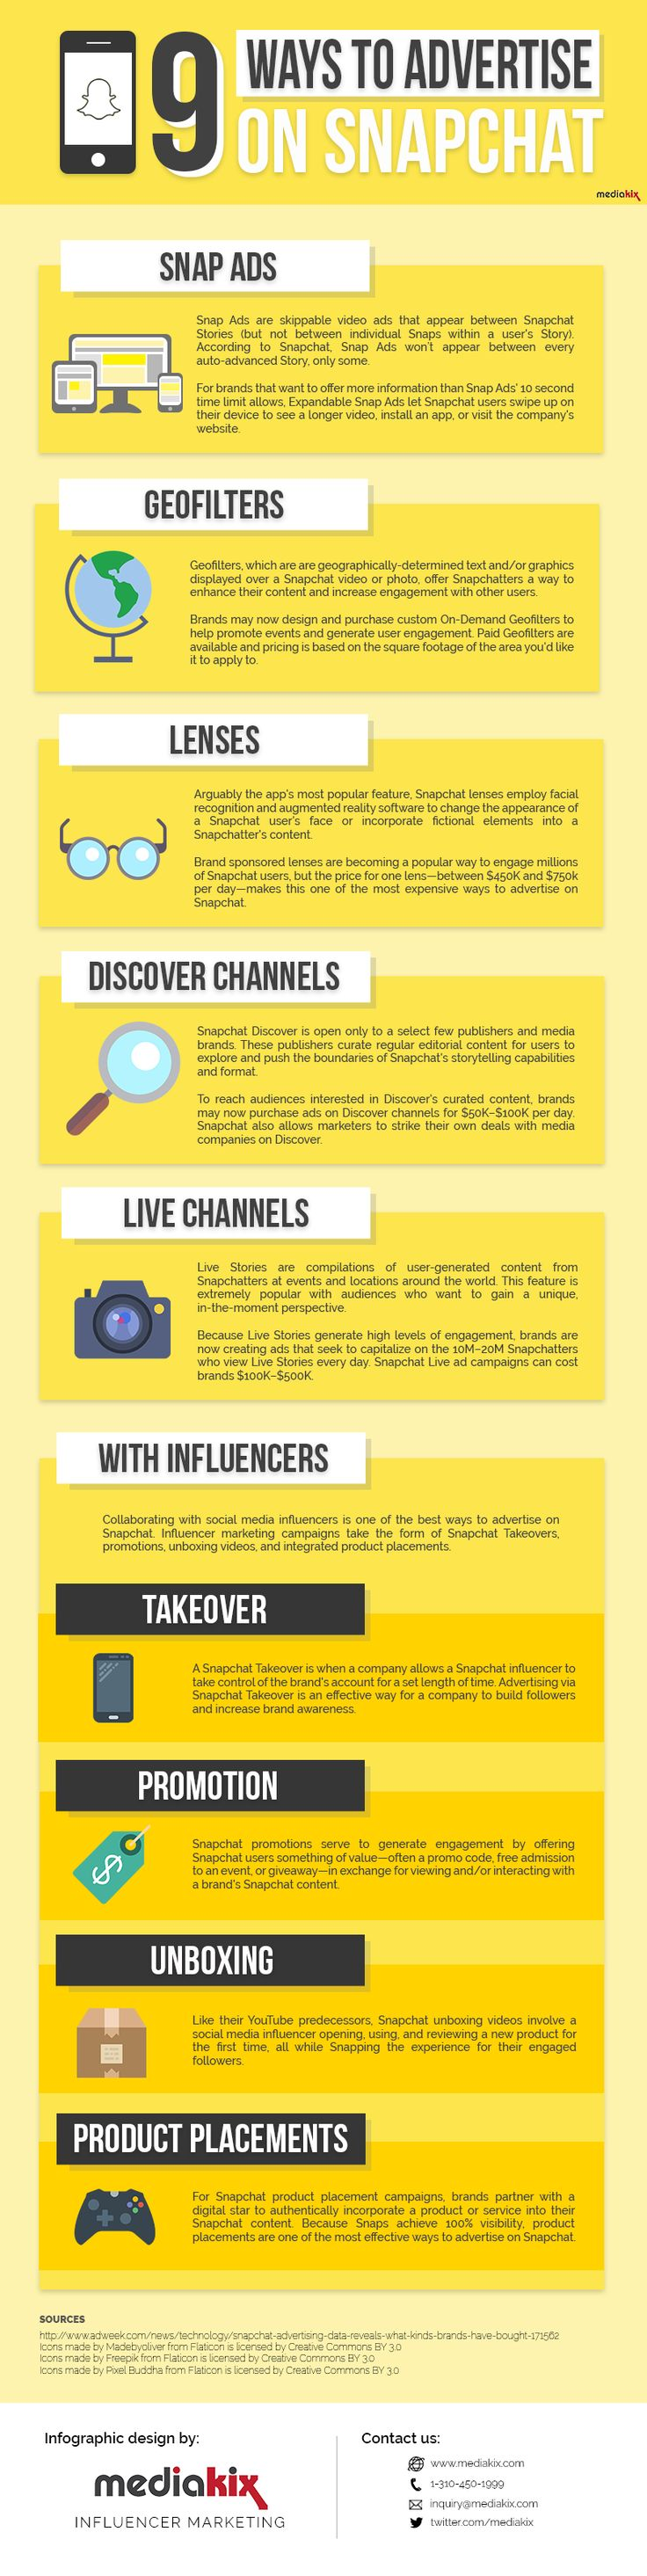 The 9 Ways to Advertise on Snapchat [INFOGRAPHIC]